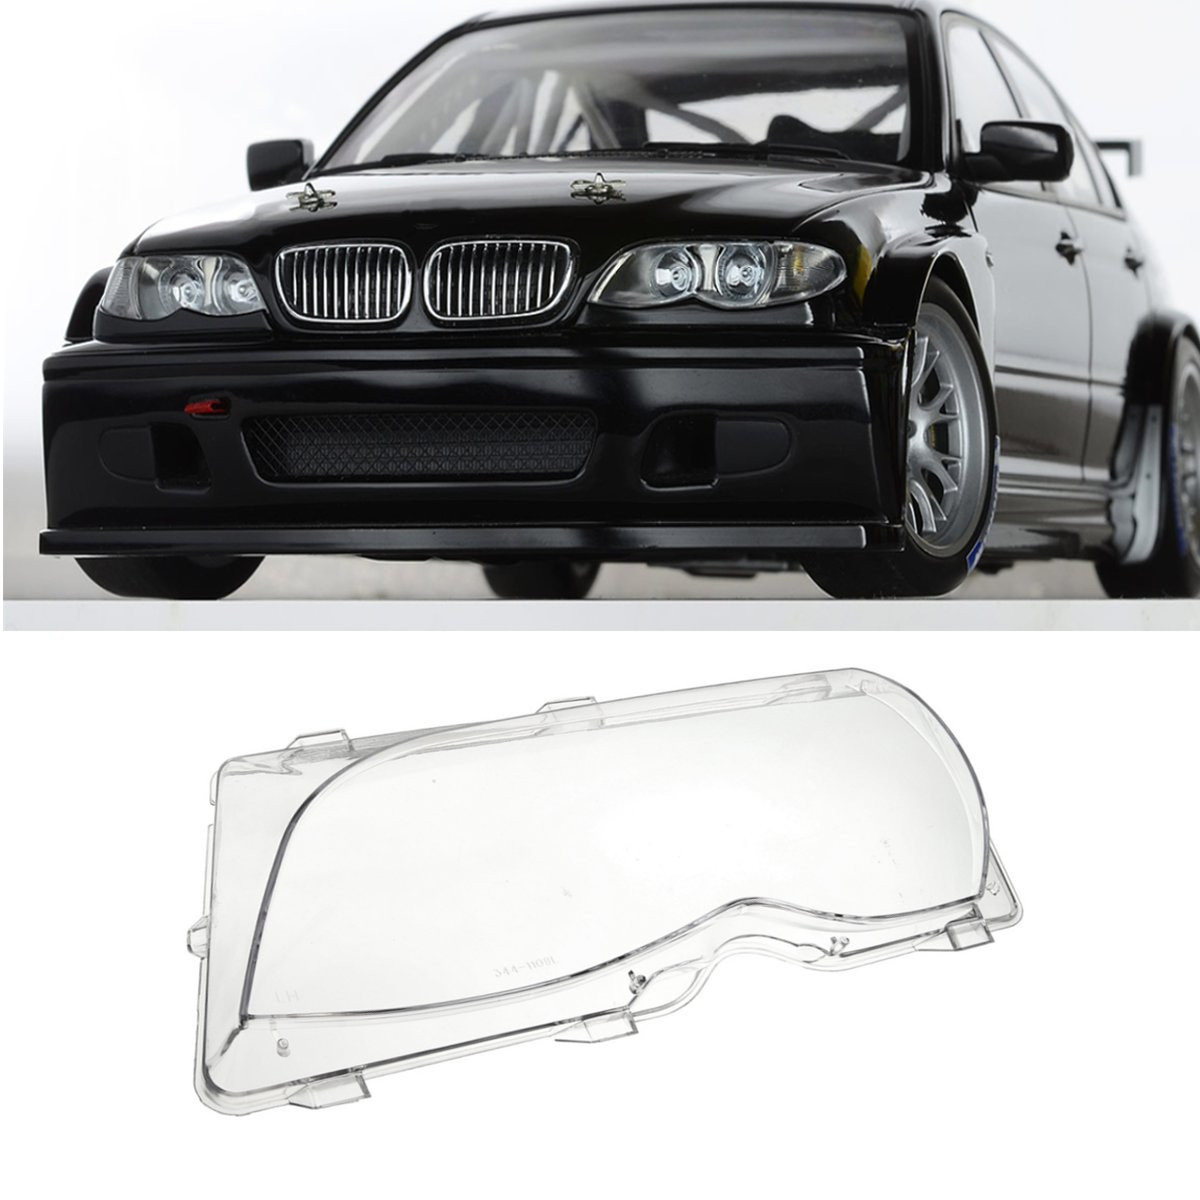 1Pcs Left/Right Driver Side Headlight Lens Plastic Shell Cover For BMW E46 3-Series 4DR 2001 2002 2003 2004 2005 63126924045 headlight clear lens cover 2 pcs front headlamp plastic shell for bmw e46 2 door 1999 2002 left